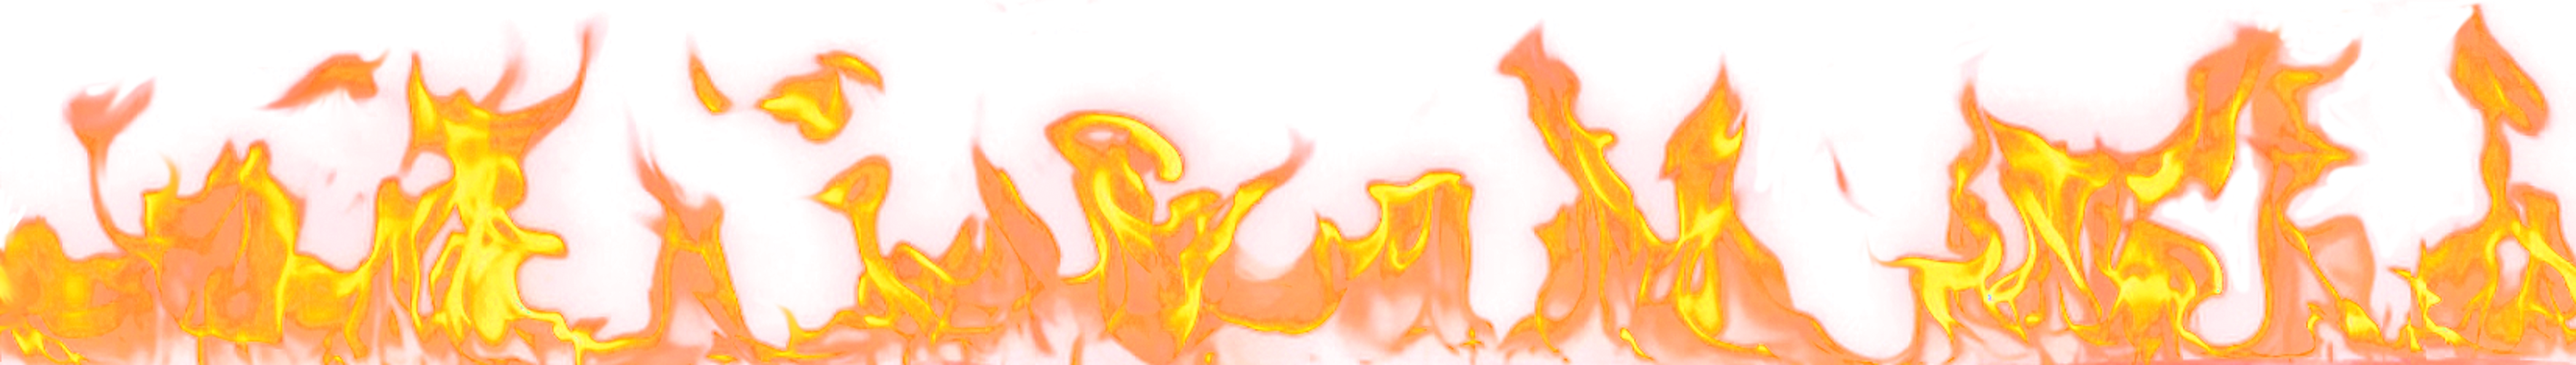 Flame images free download. Fire png transparent svg transparent library